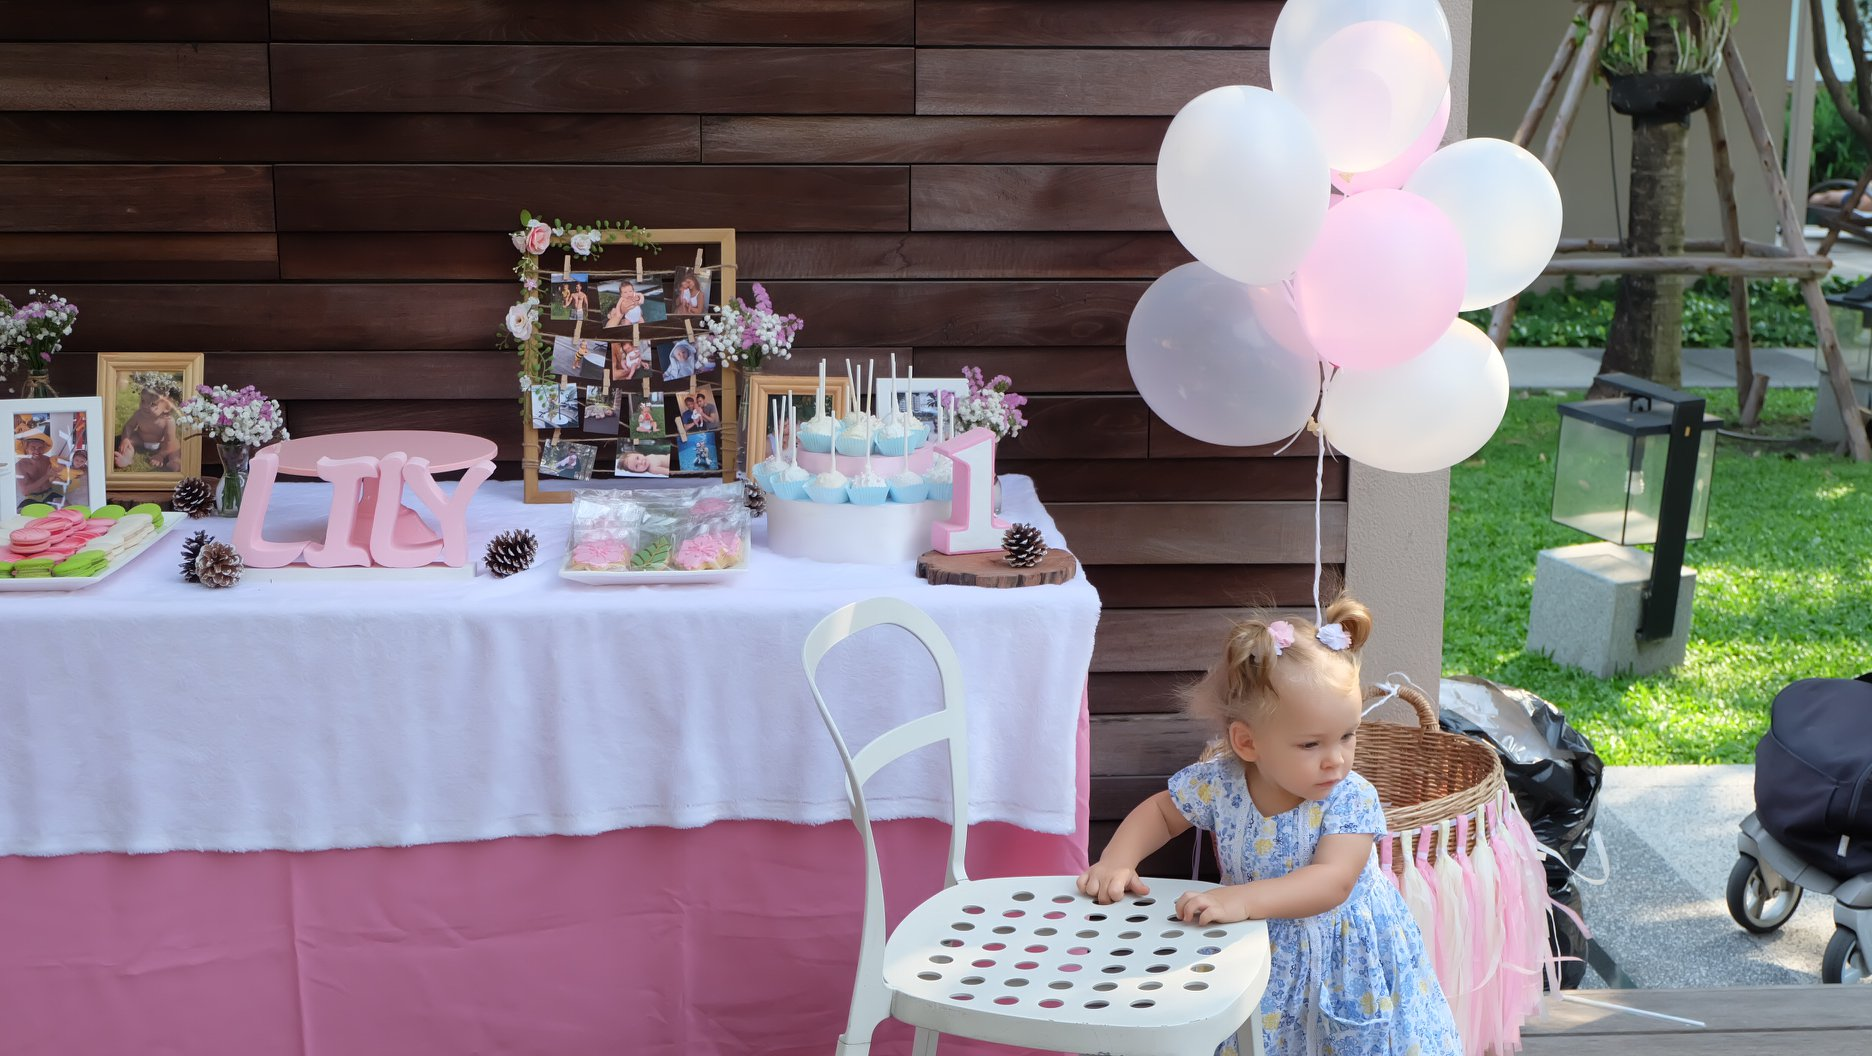 Pastel theme decoration by the party planner for kids birthday, providing one-stop party service in Bangkok area